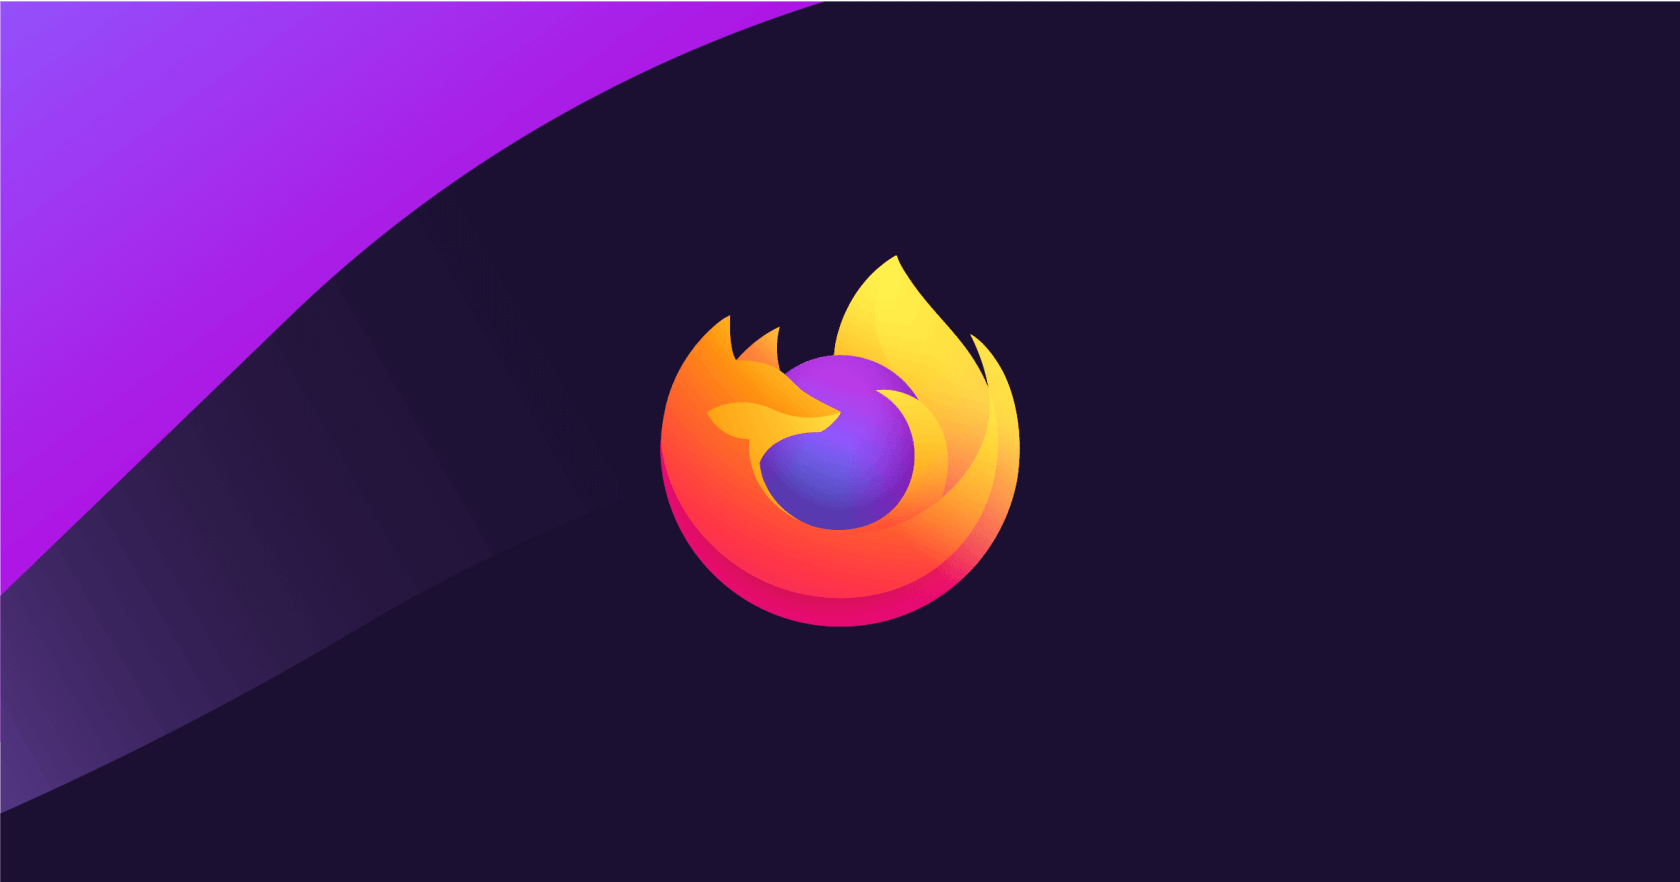 Mozilla's latest Firefox update brings a revamped address bar